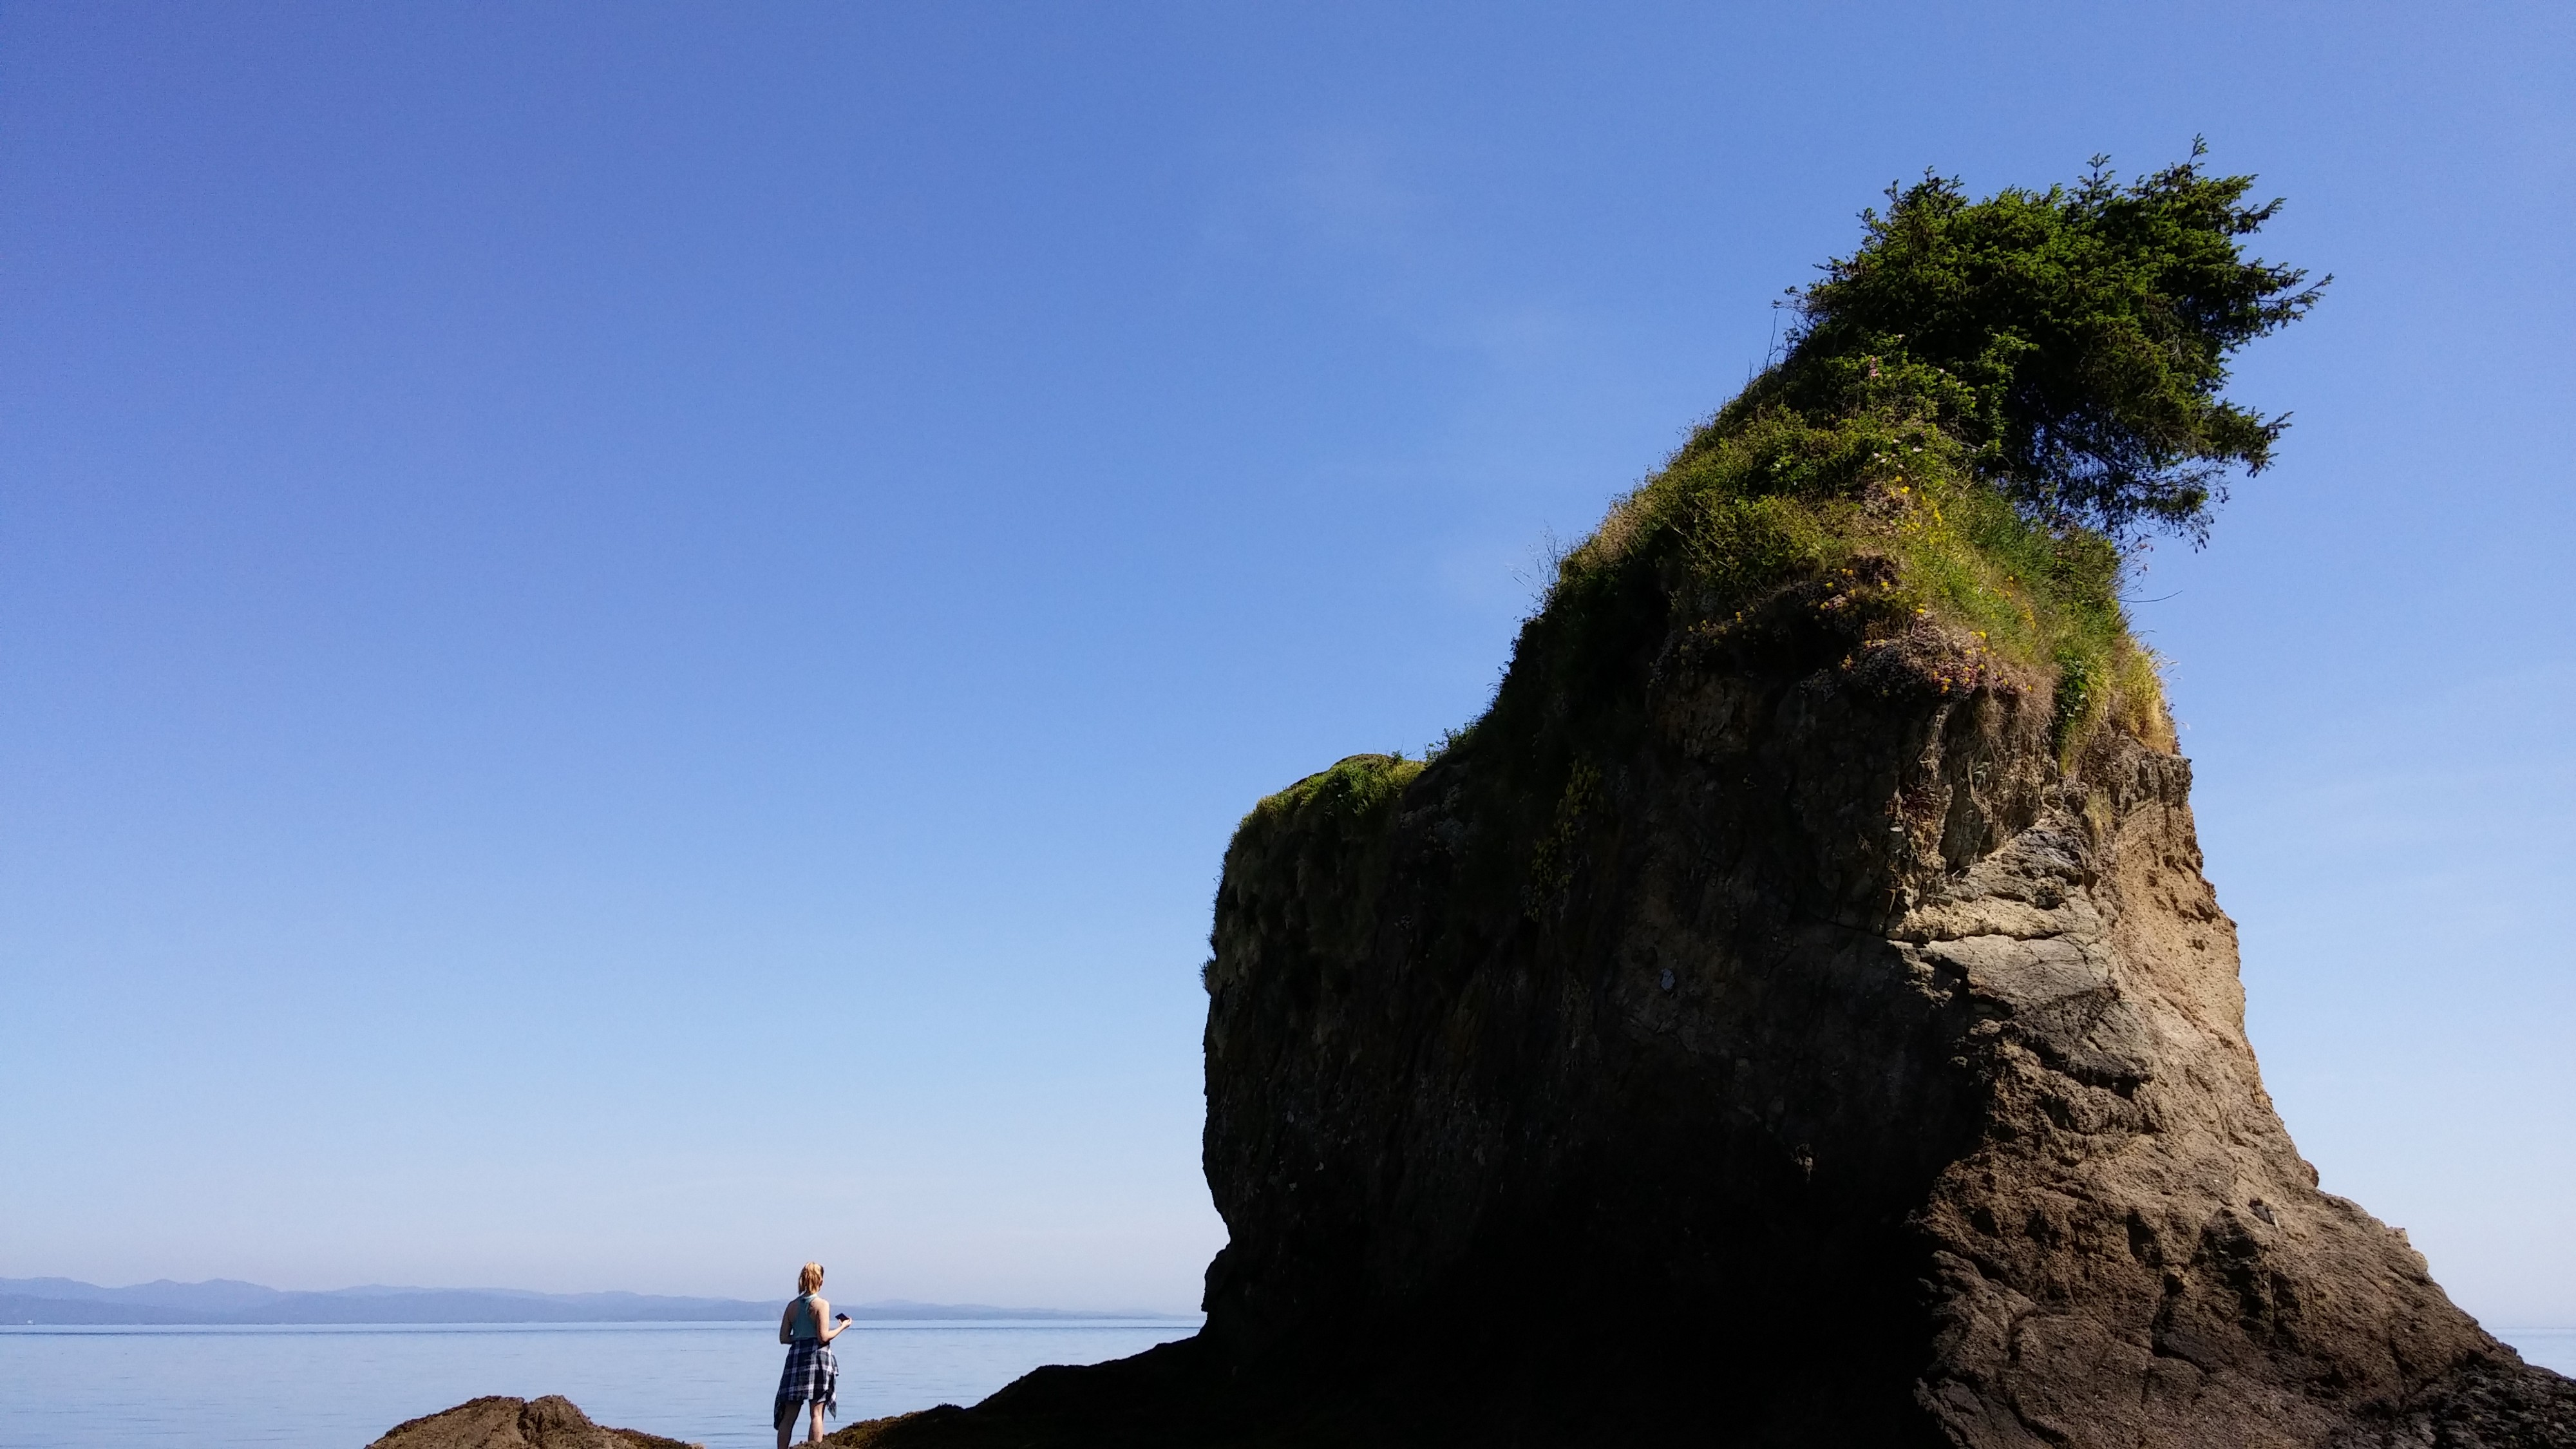 A hiker appears tiny in comparison to the sea stack she is standing next to.